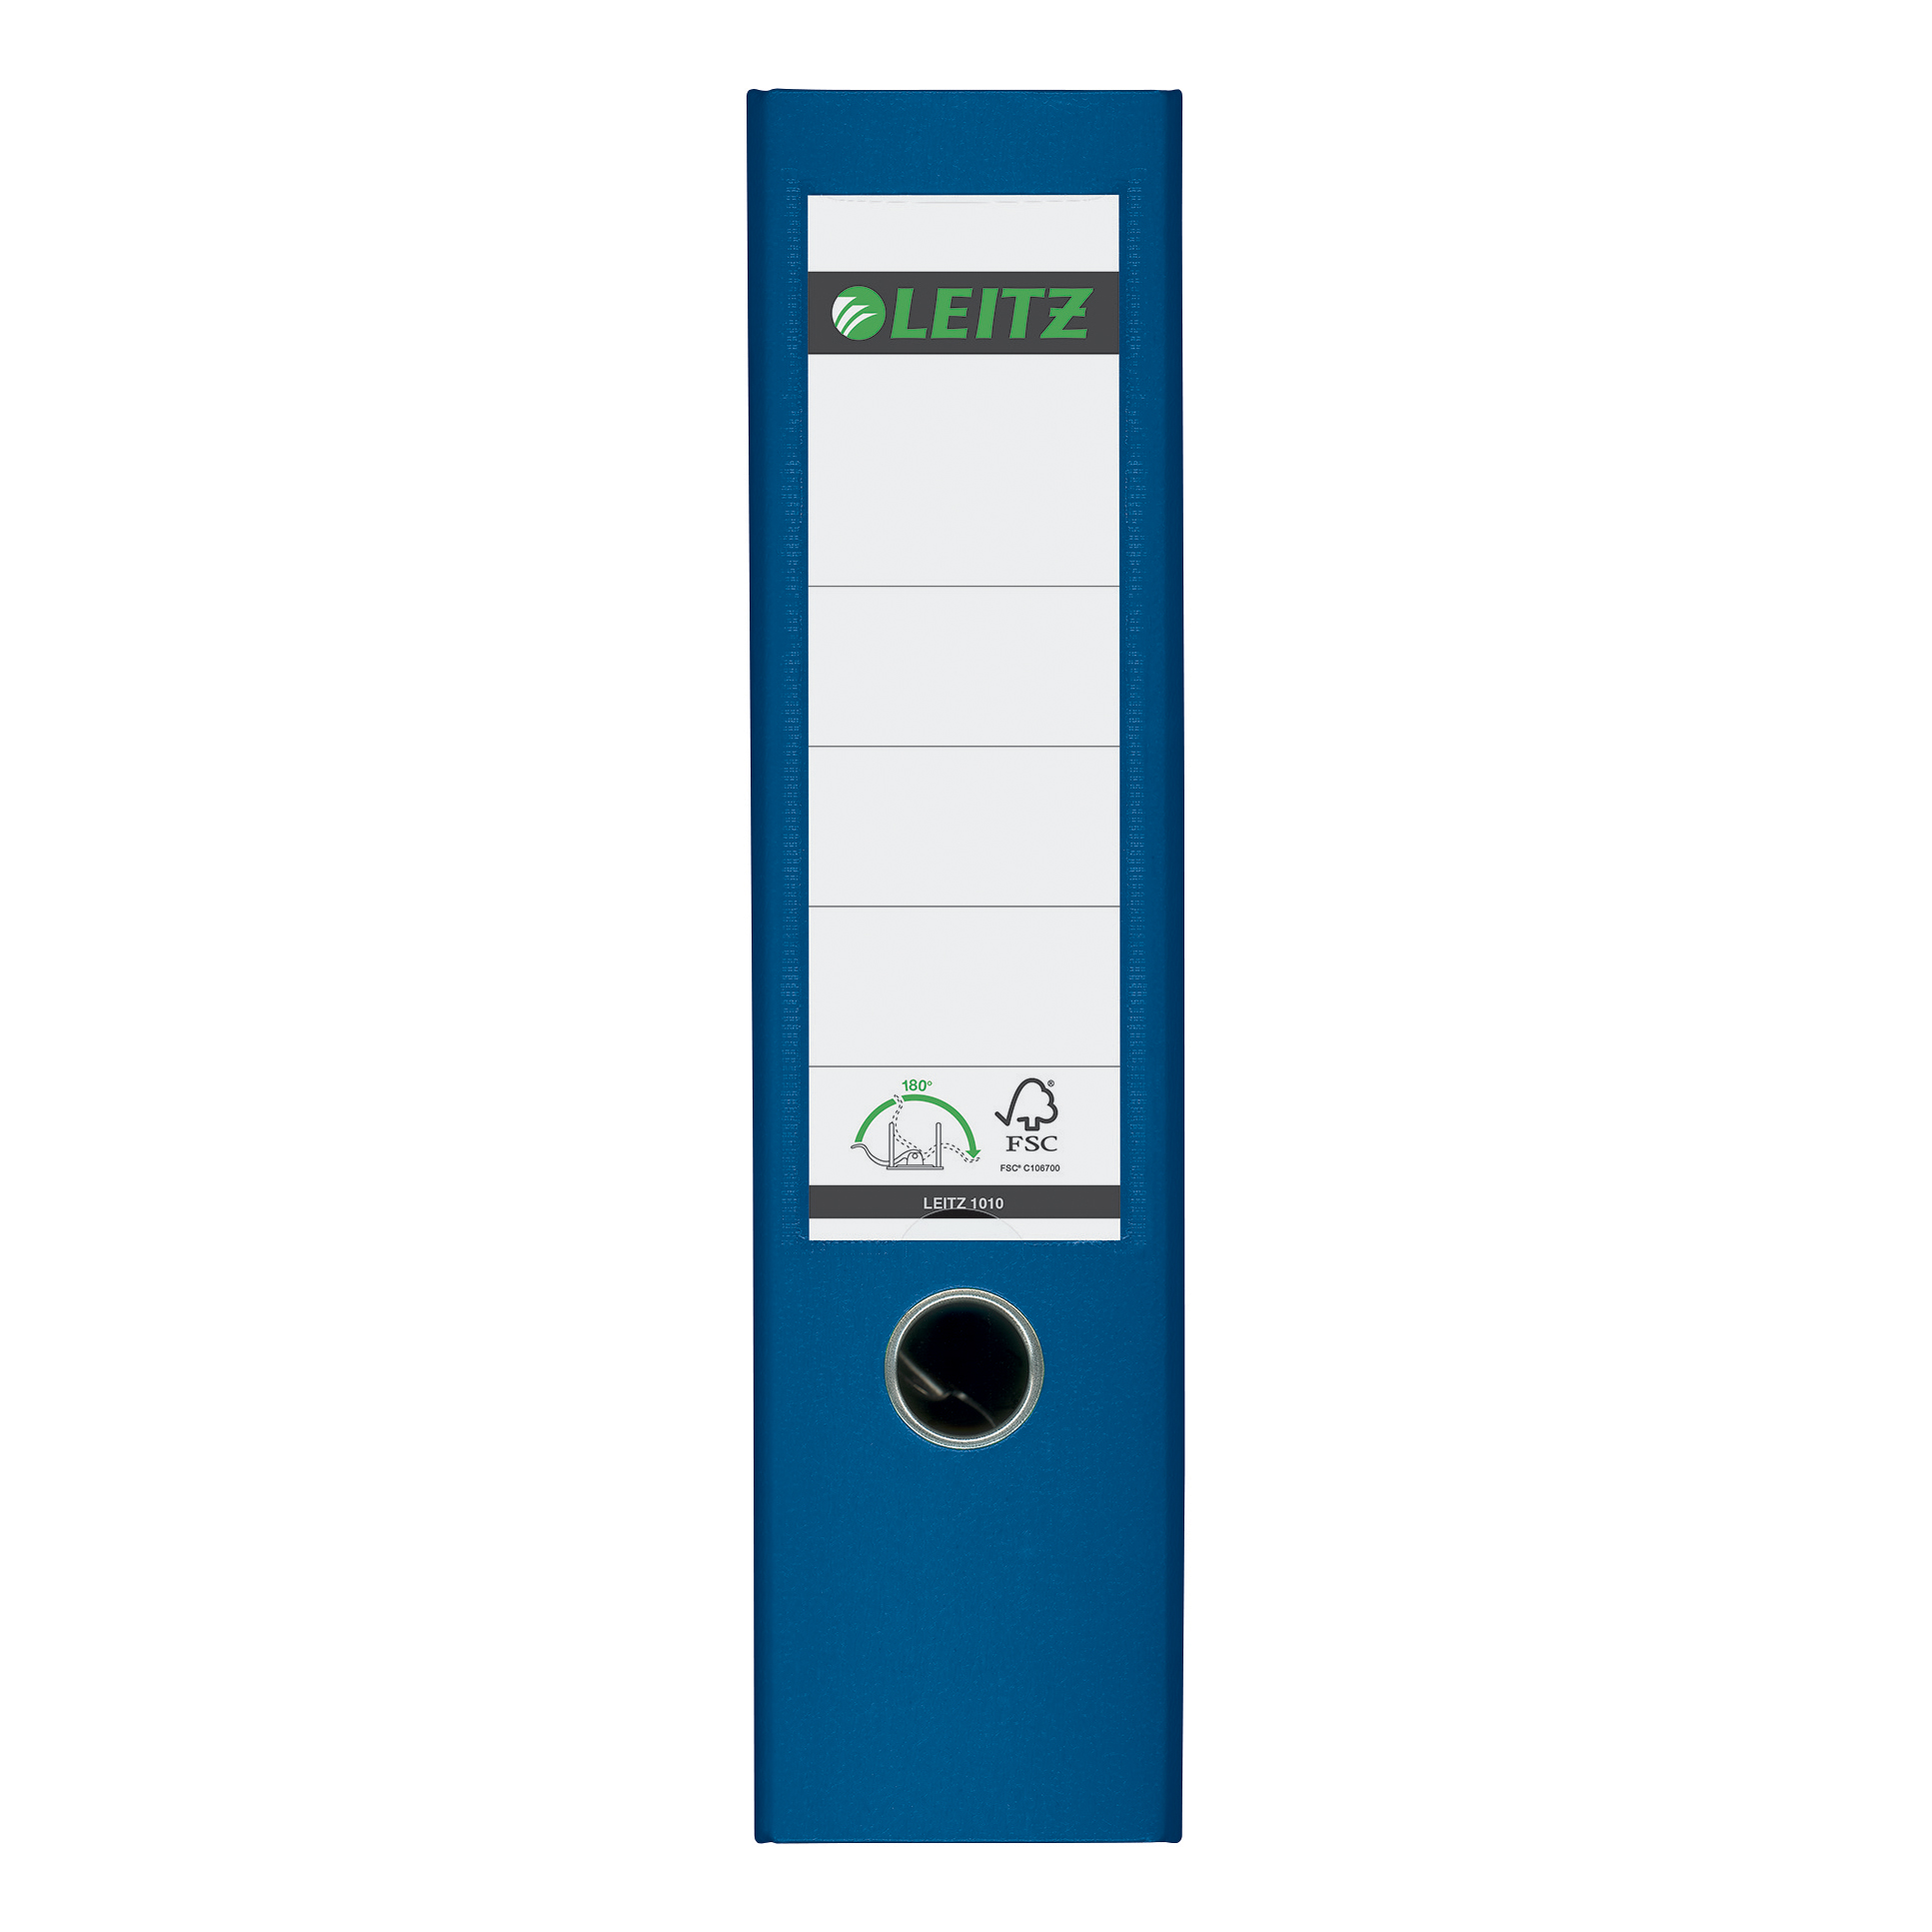 Leitz FSC Lever Arch File Plastic 80mm Spine A4 Blue Ref 10101035 [Pack 10] [REDEMPTION] Jan-Mar20